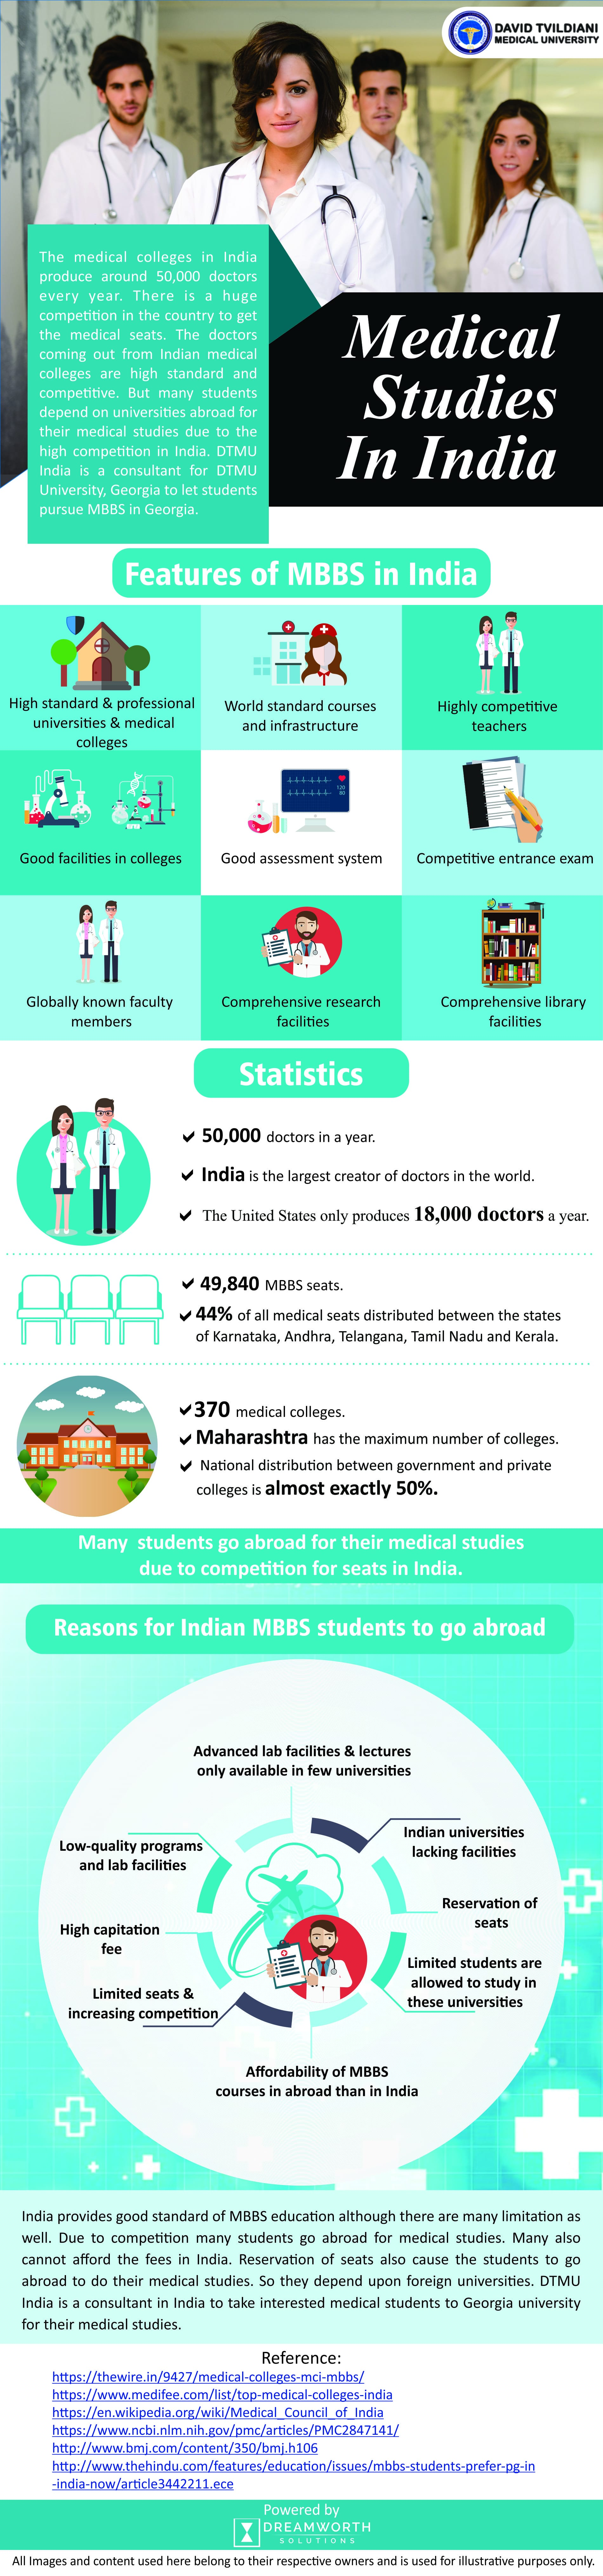 This infographic indentifies the status of medical studies in India